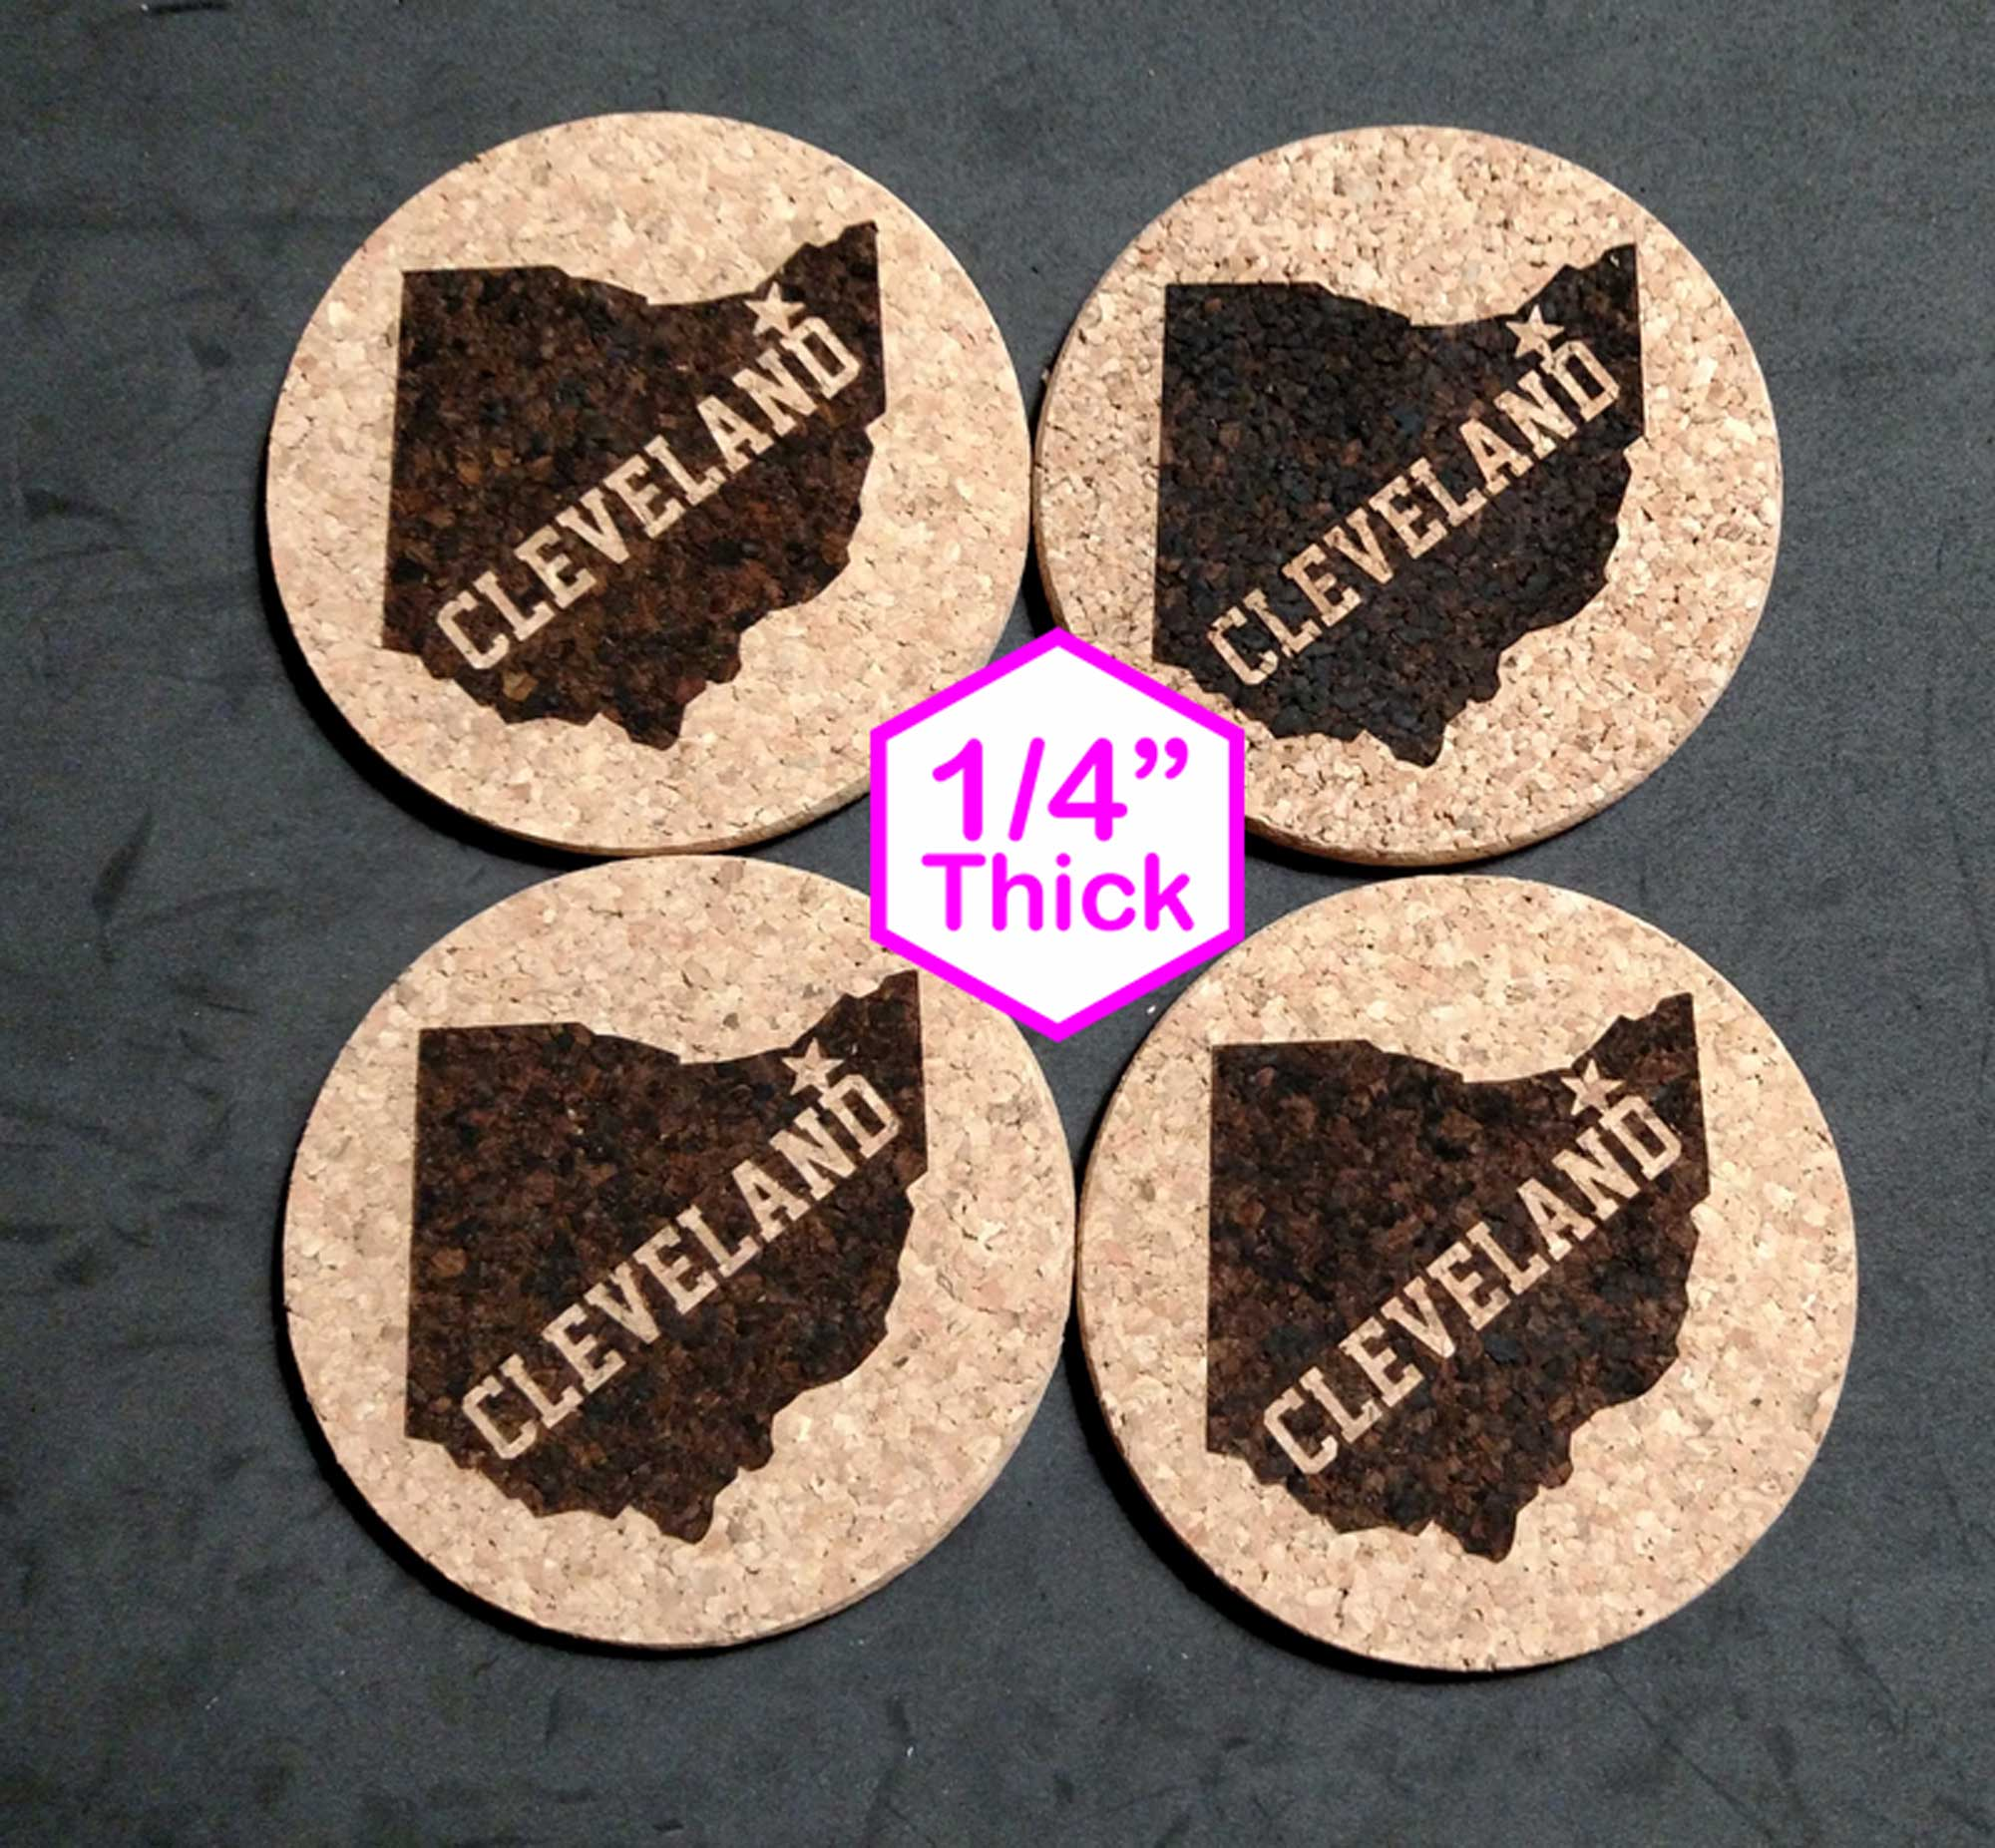 "Cleveland Ohio 4"" x 4"" Cork Coasters"